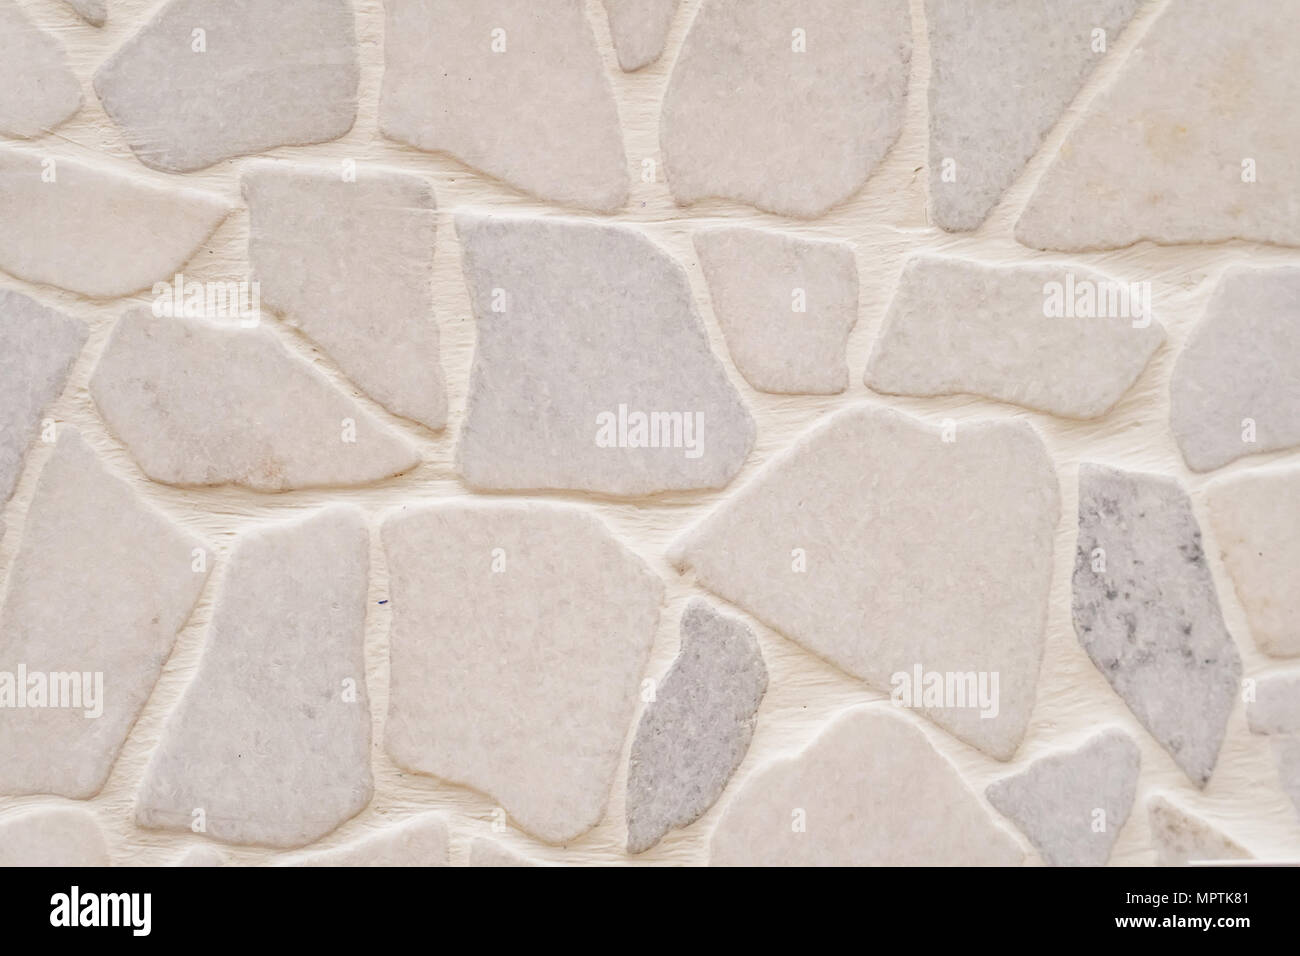 White Vintage Ceramic Tiles Wall Decoration Mosaic Pattern For Design And Fashion Stock Photo Alamy